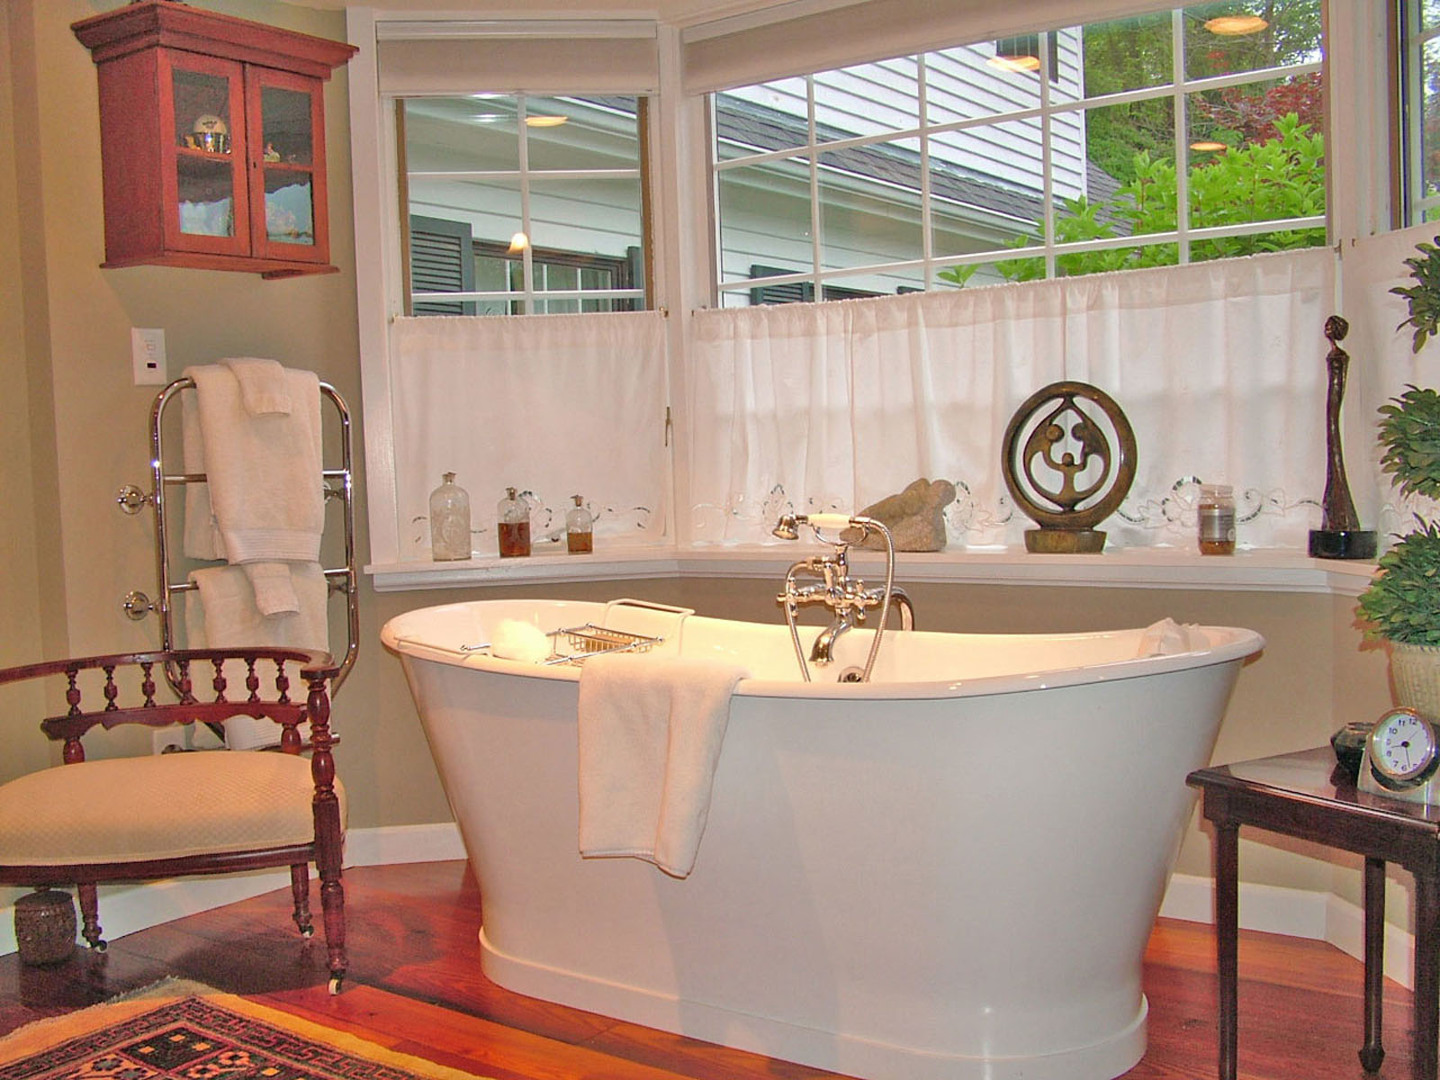 A large white tub sitting next to a window at The Welsh Hills Inn.